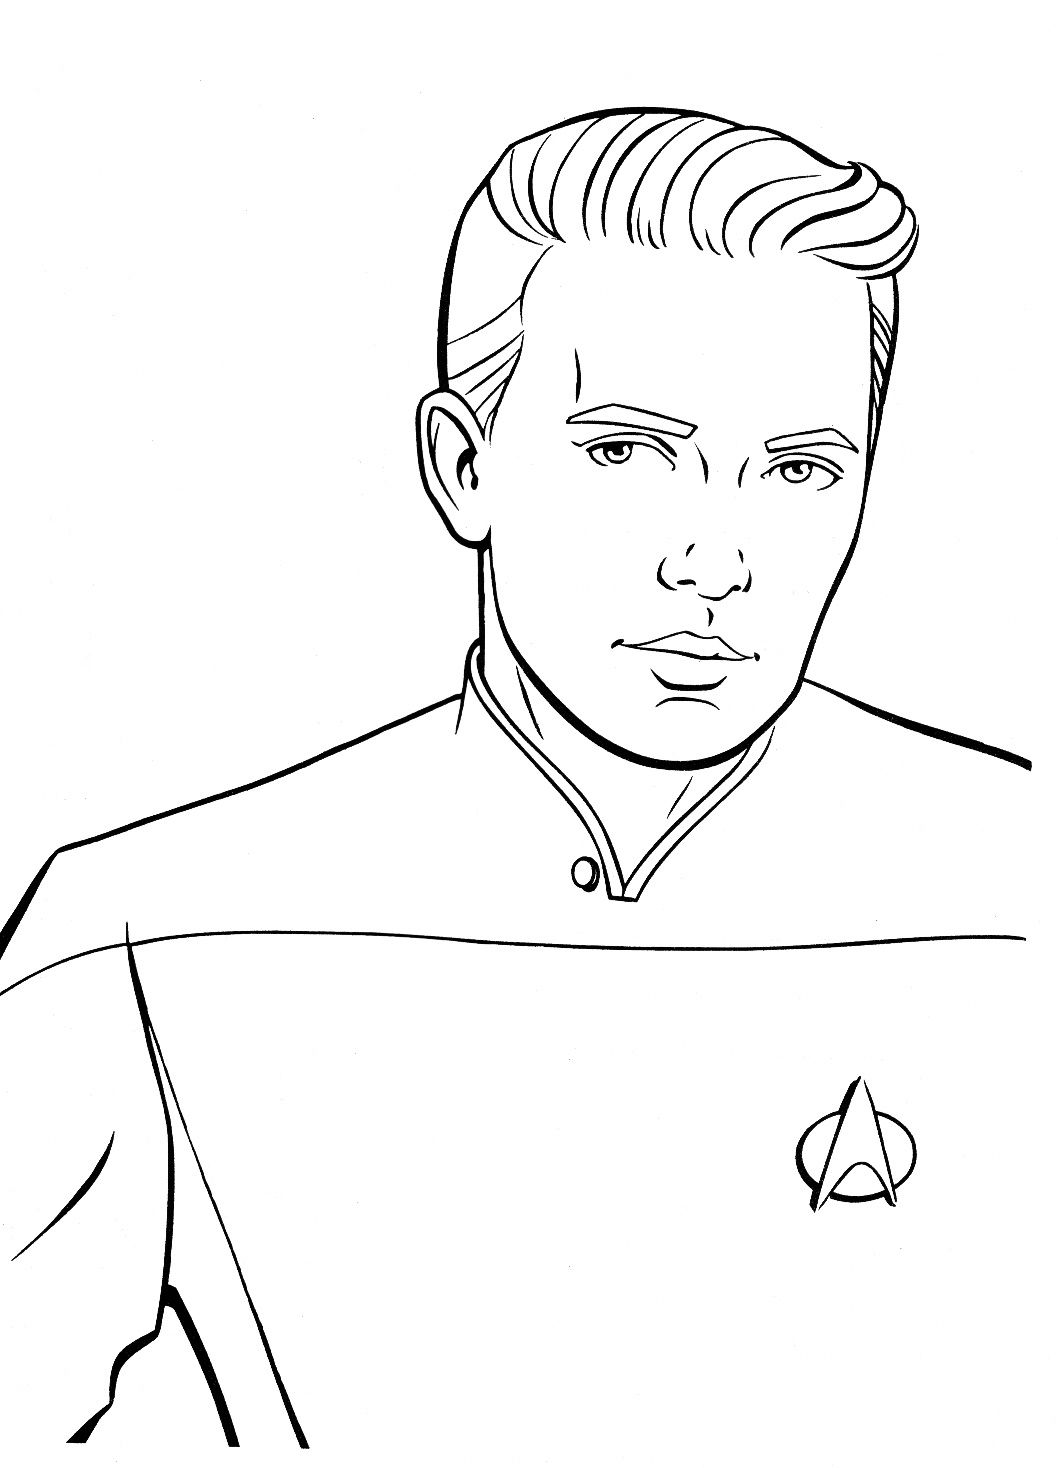 The Best Scenes From Insane Old Star Trek Coloring Books Star